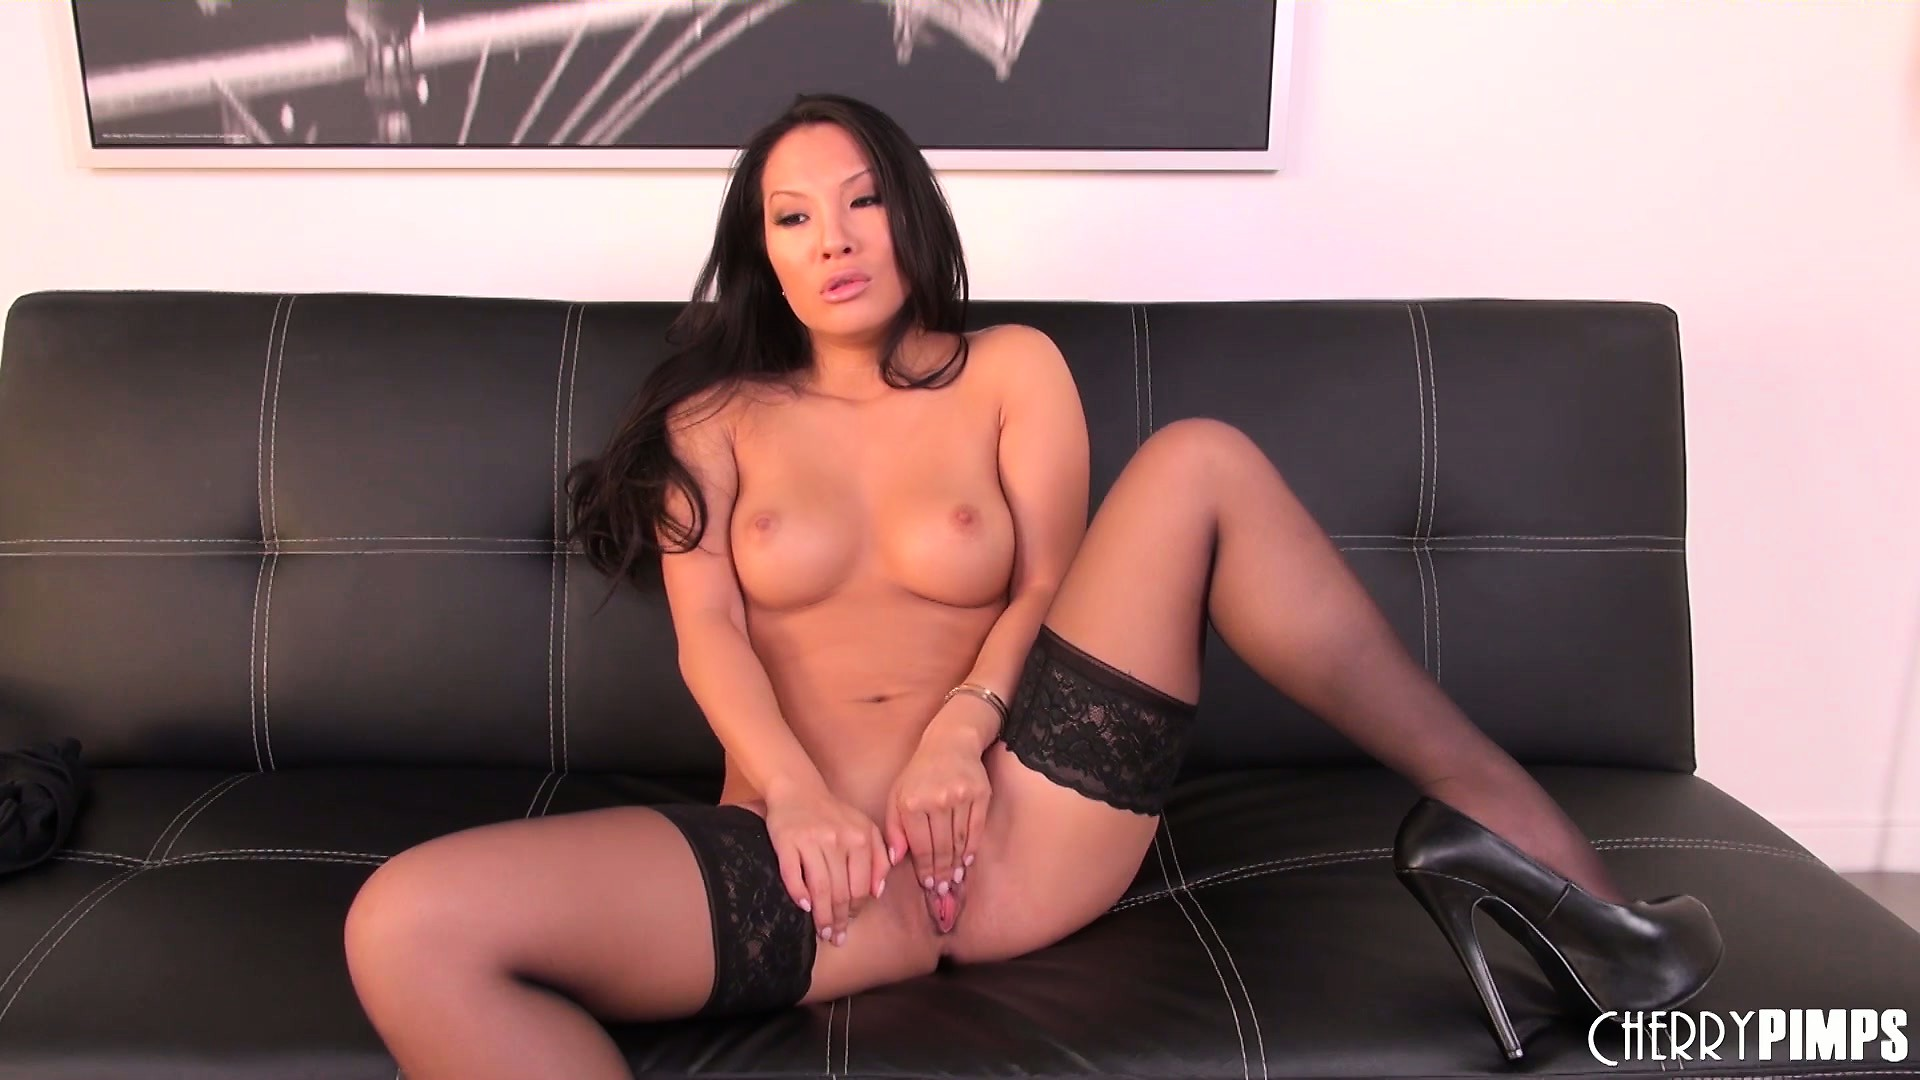 Porn Tube of Asian Slut Asa Akira Looks Hot In Her Sexy Thigh High Stocking And A Dildo In Her Mouth